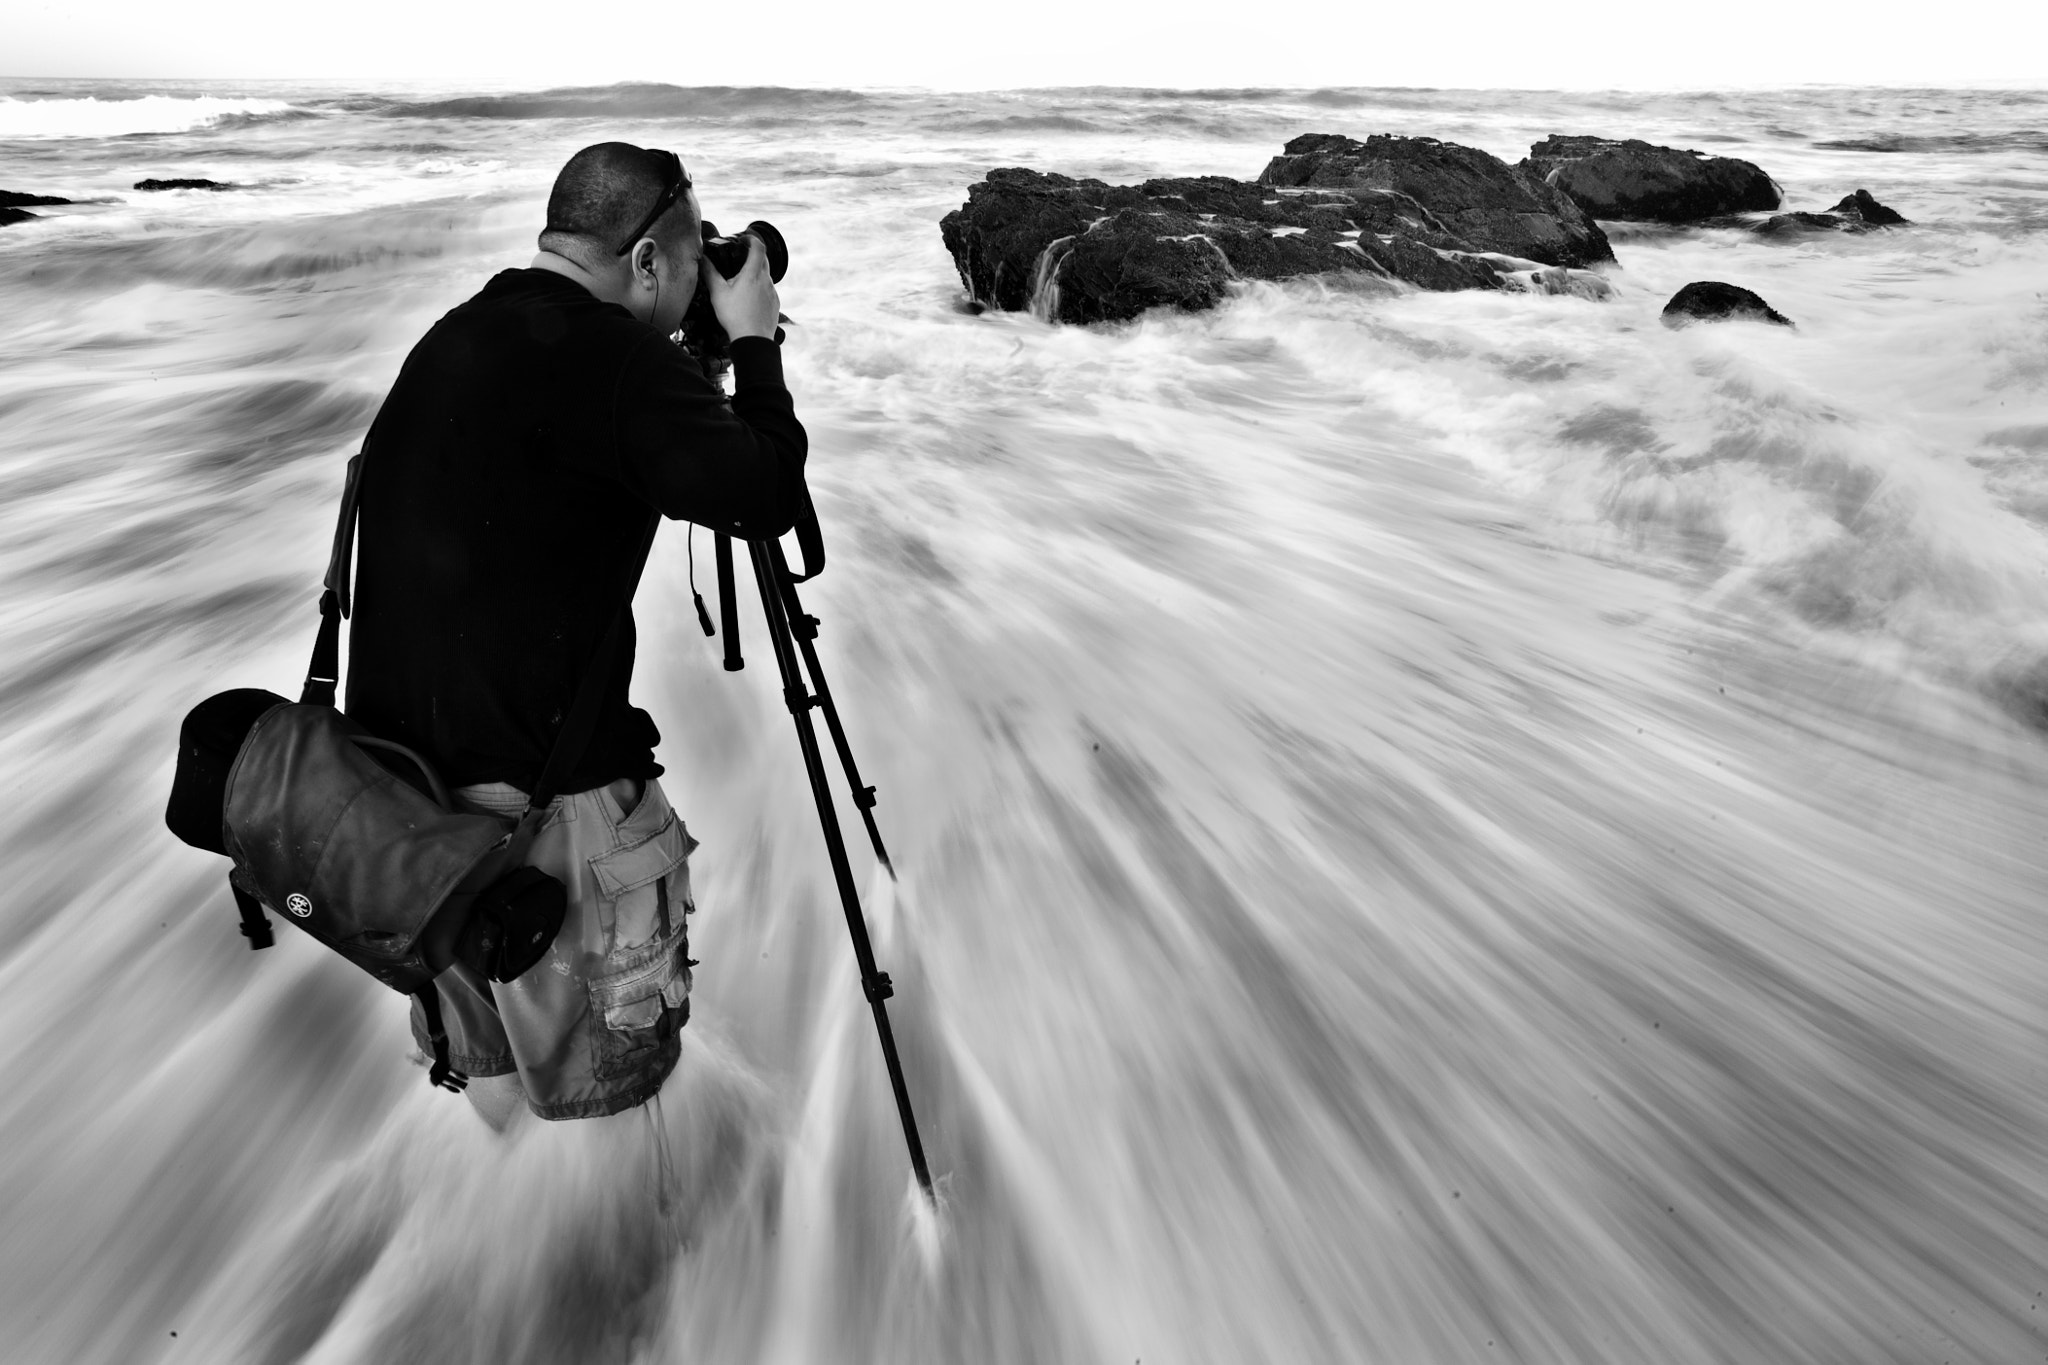 Photograph Shutter Speed by Christopher Rusanowsky on 500px